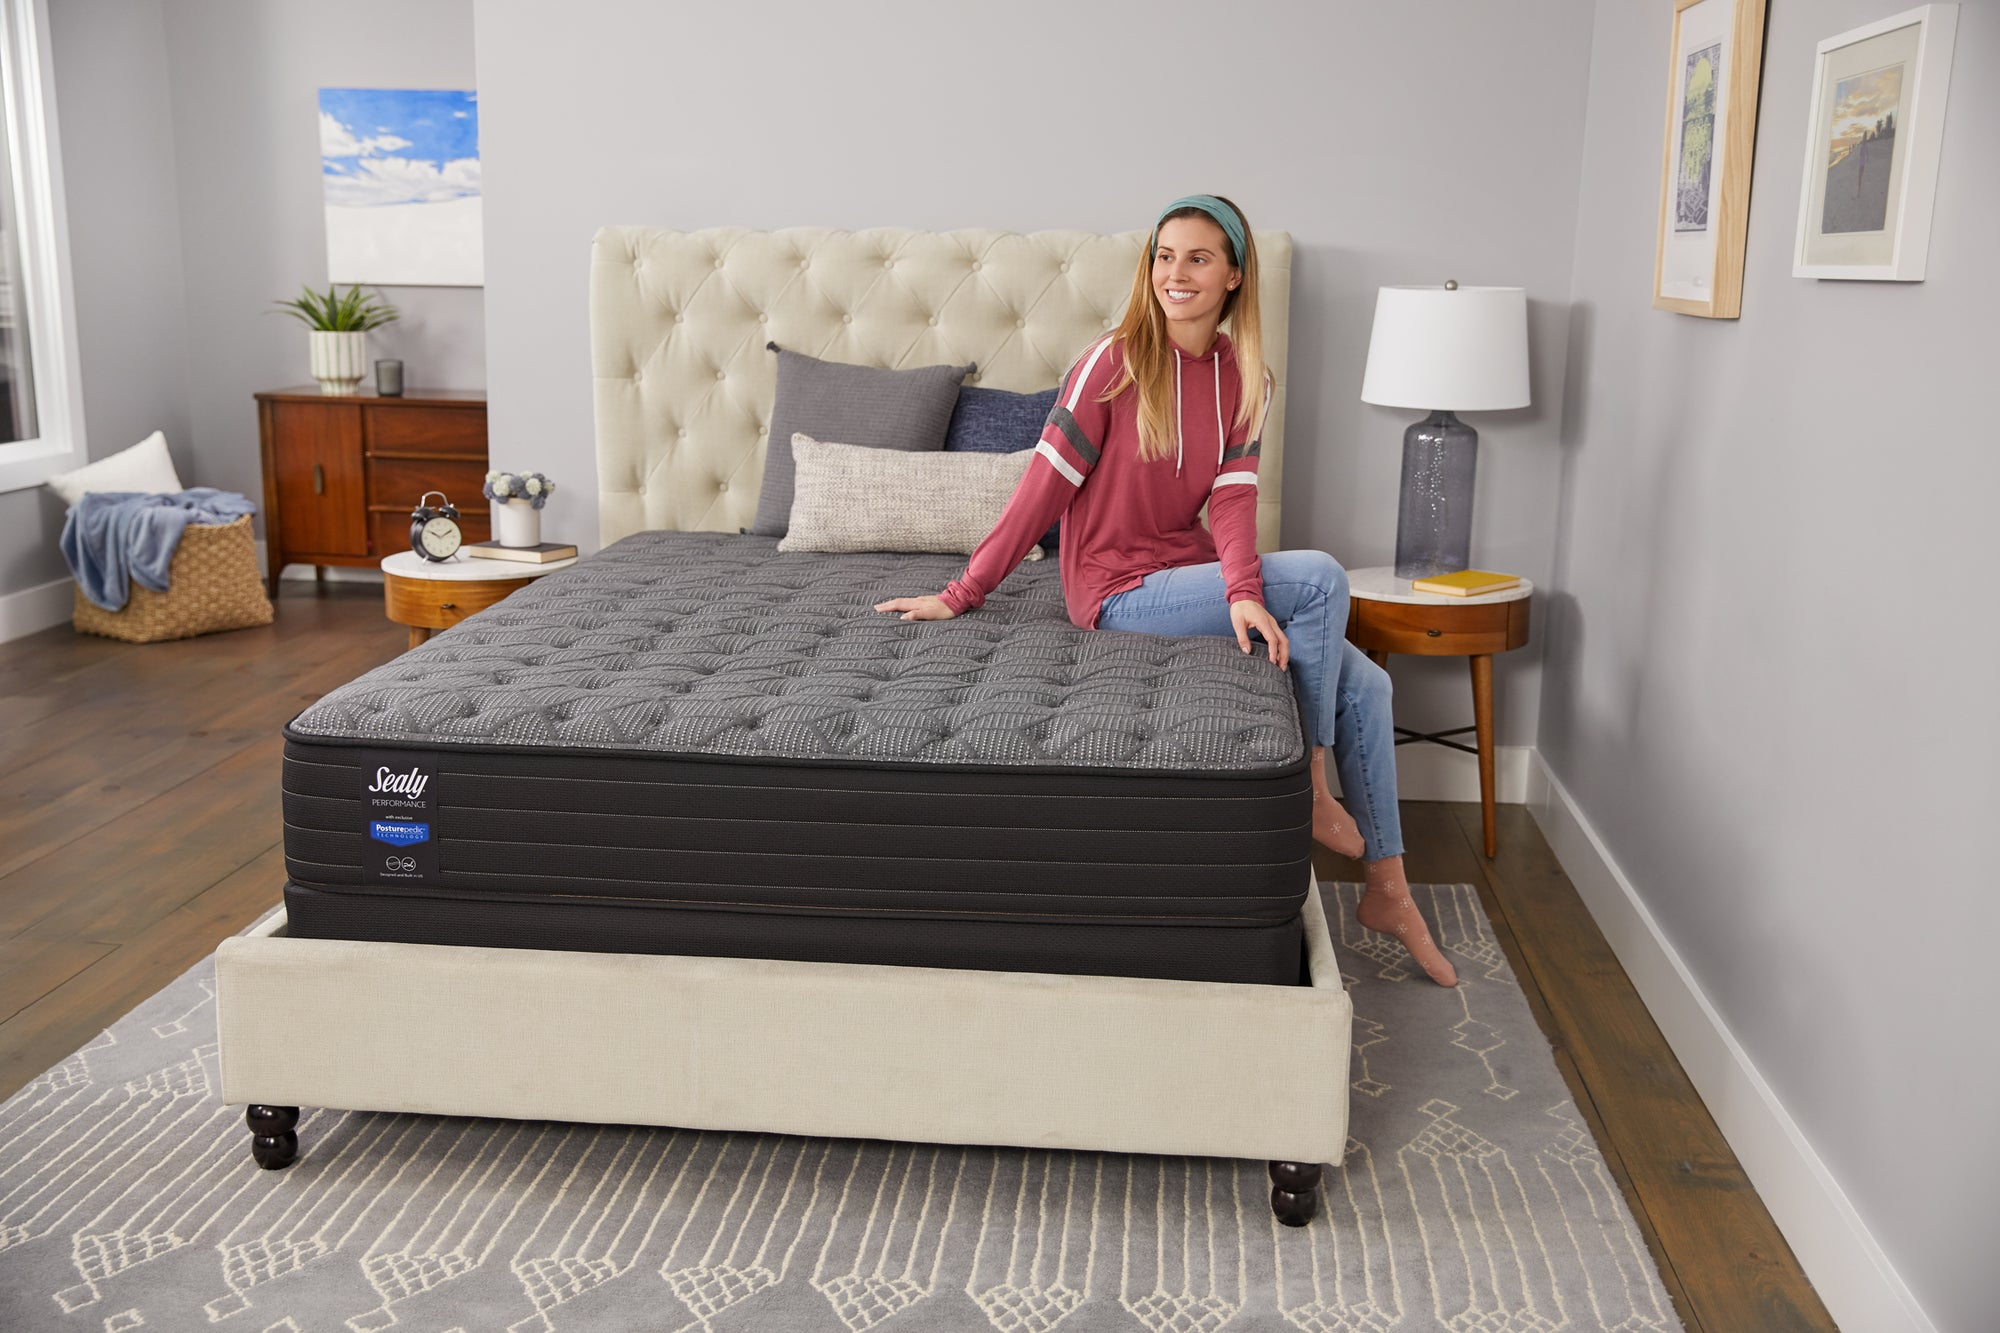 Smiling woman sitting on Sealy mattress